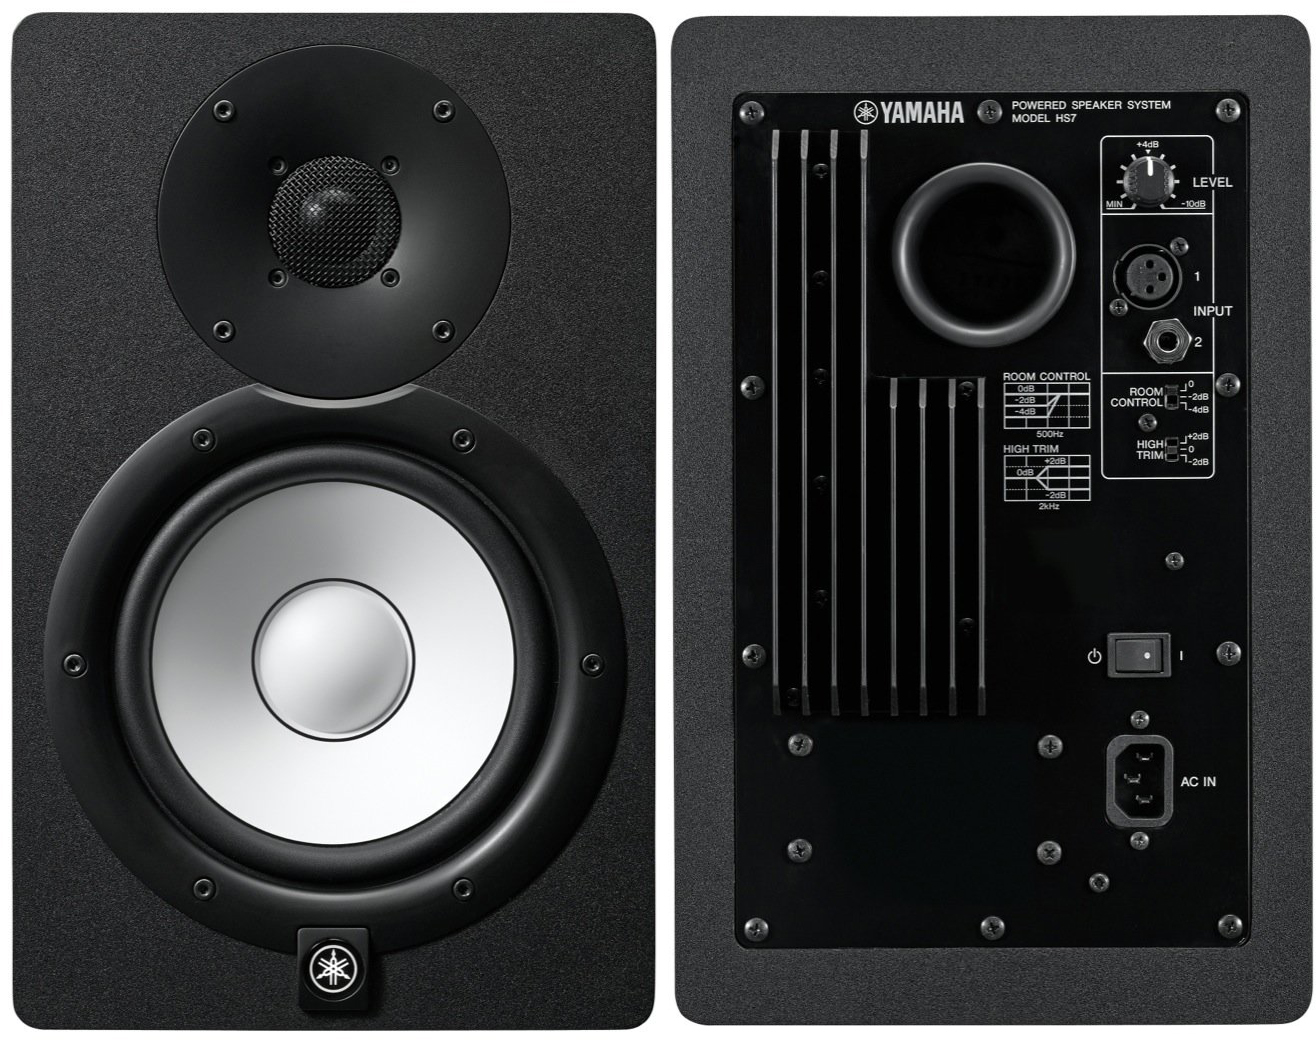 Fine Best Studio Monitors Under 200 And Up To 500 Gearank Largest Home Design Picture Inspirations Pitcheantrous